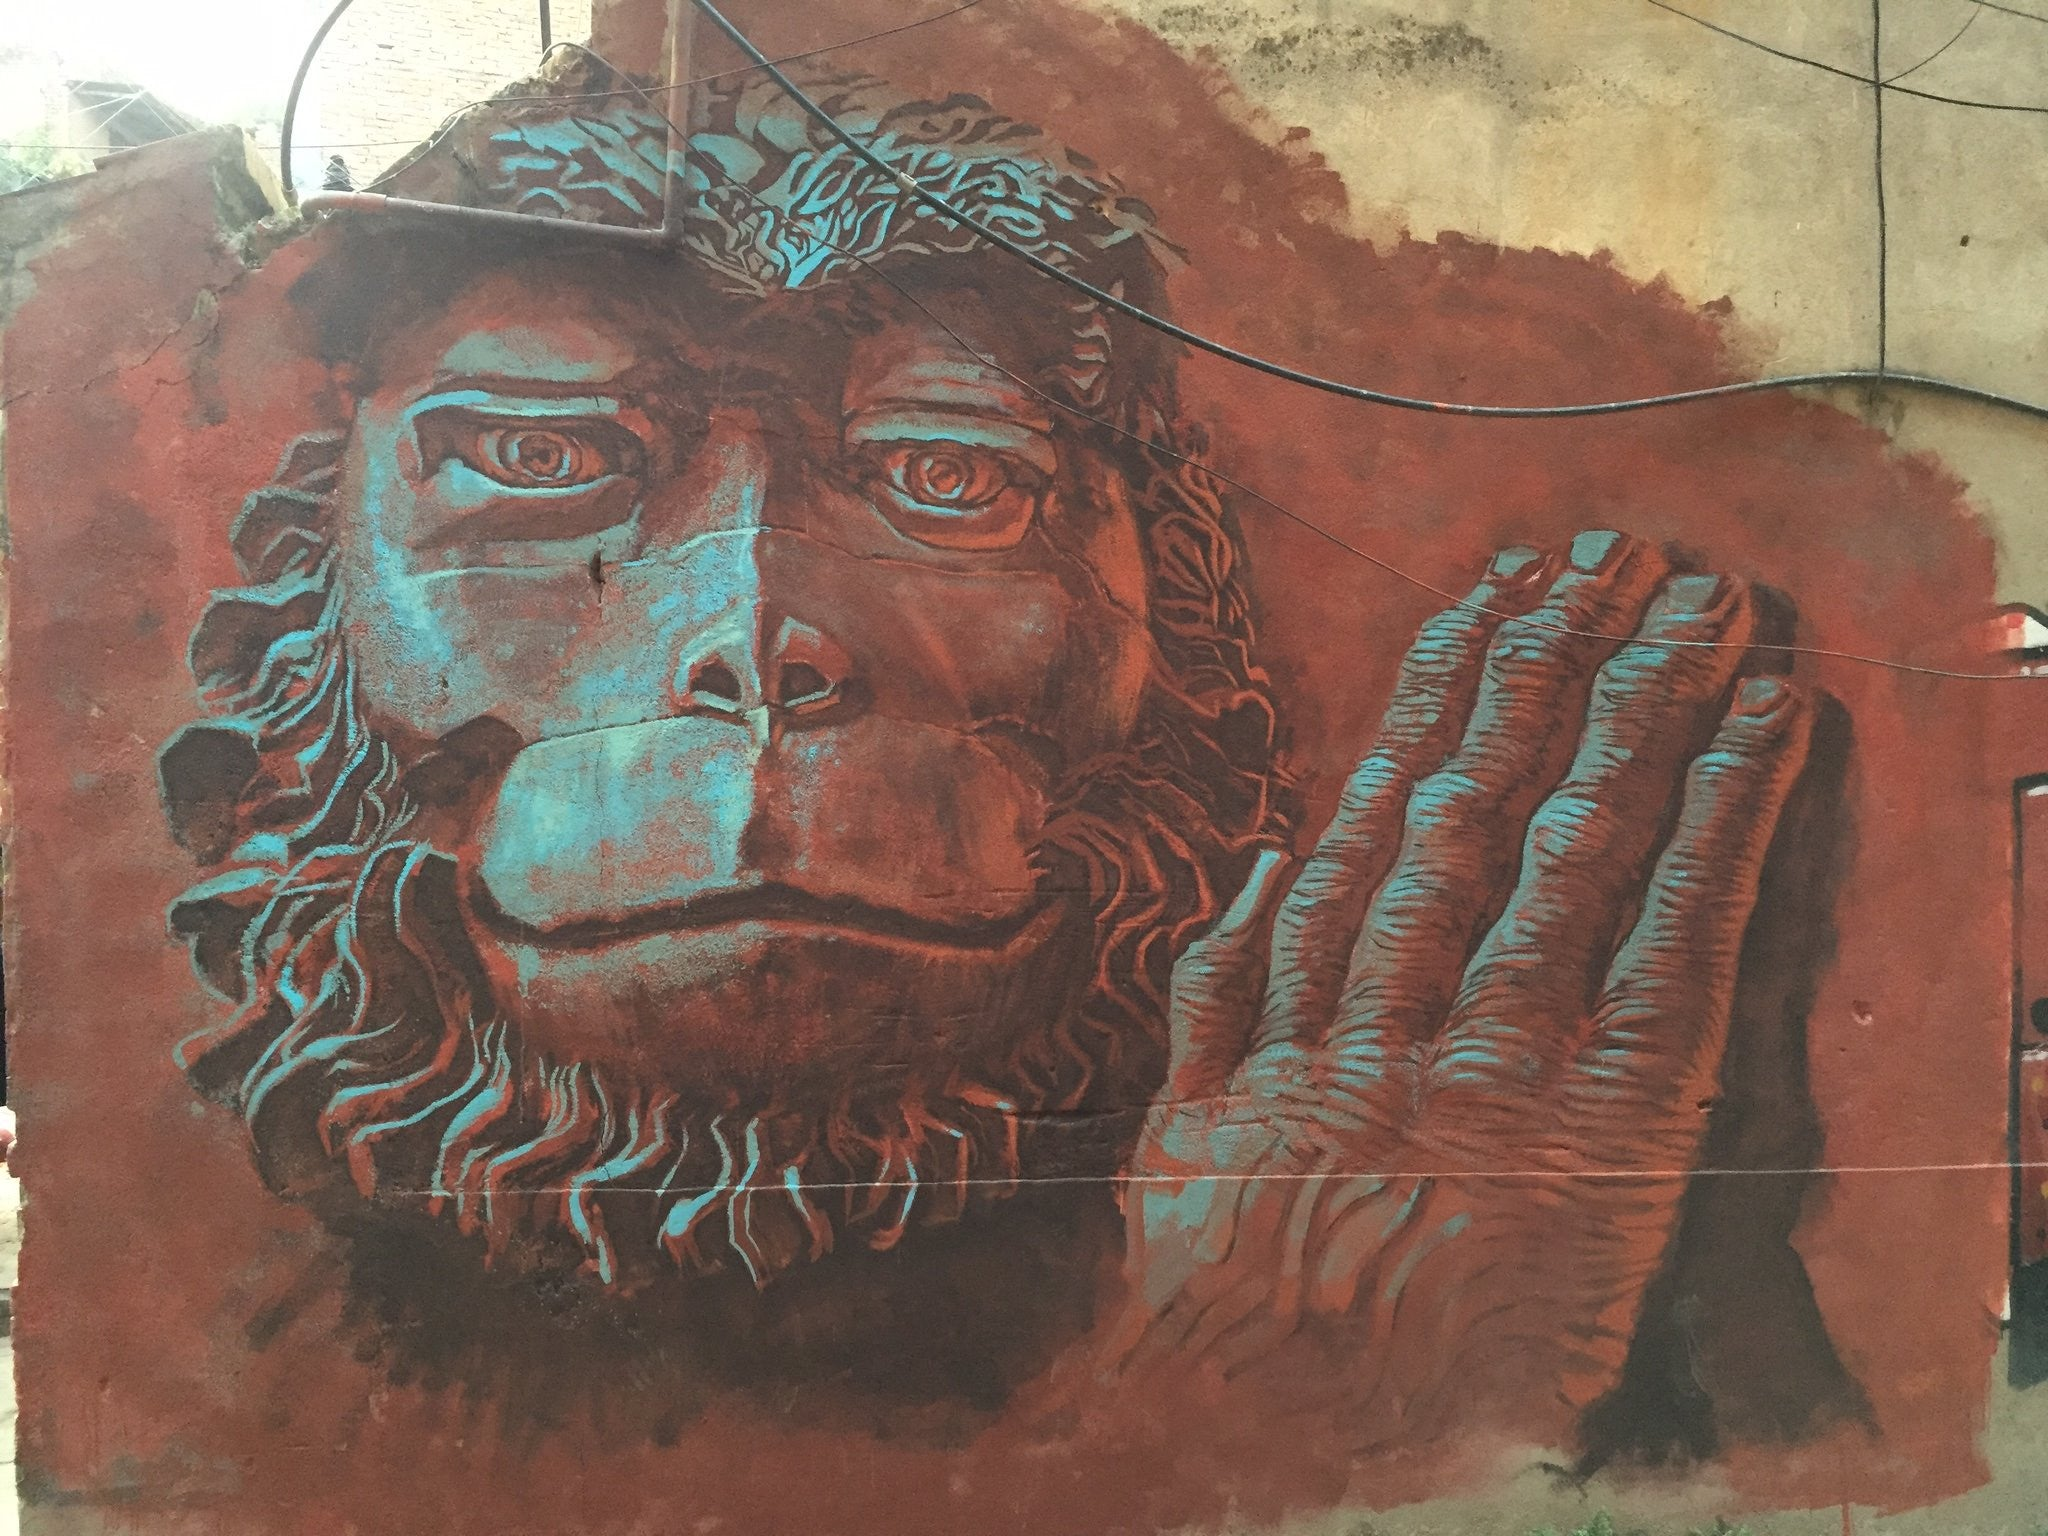 Imagined Realities, Part I: Monkey Spirit Mural, Kathmandu